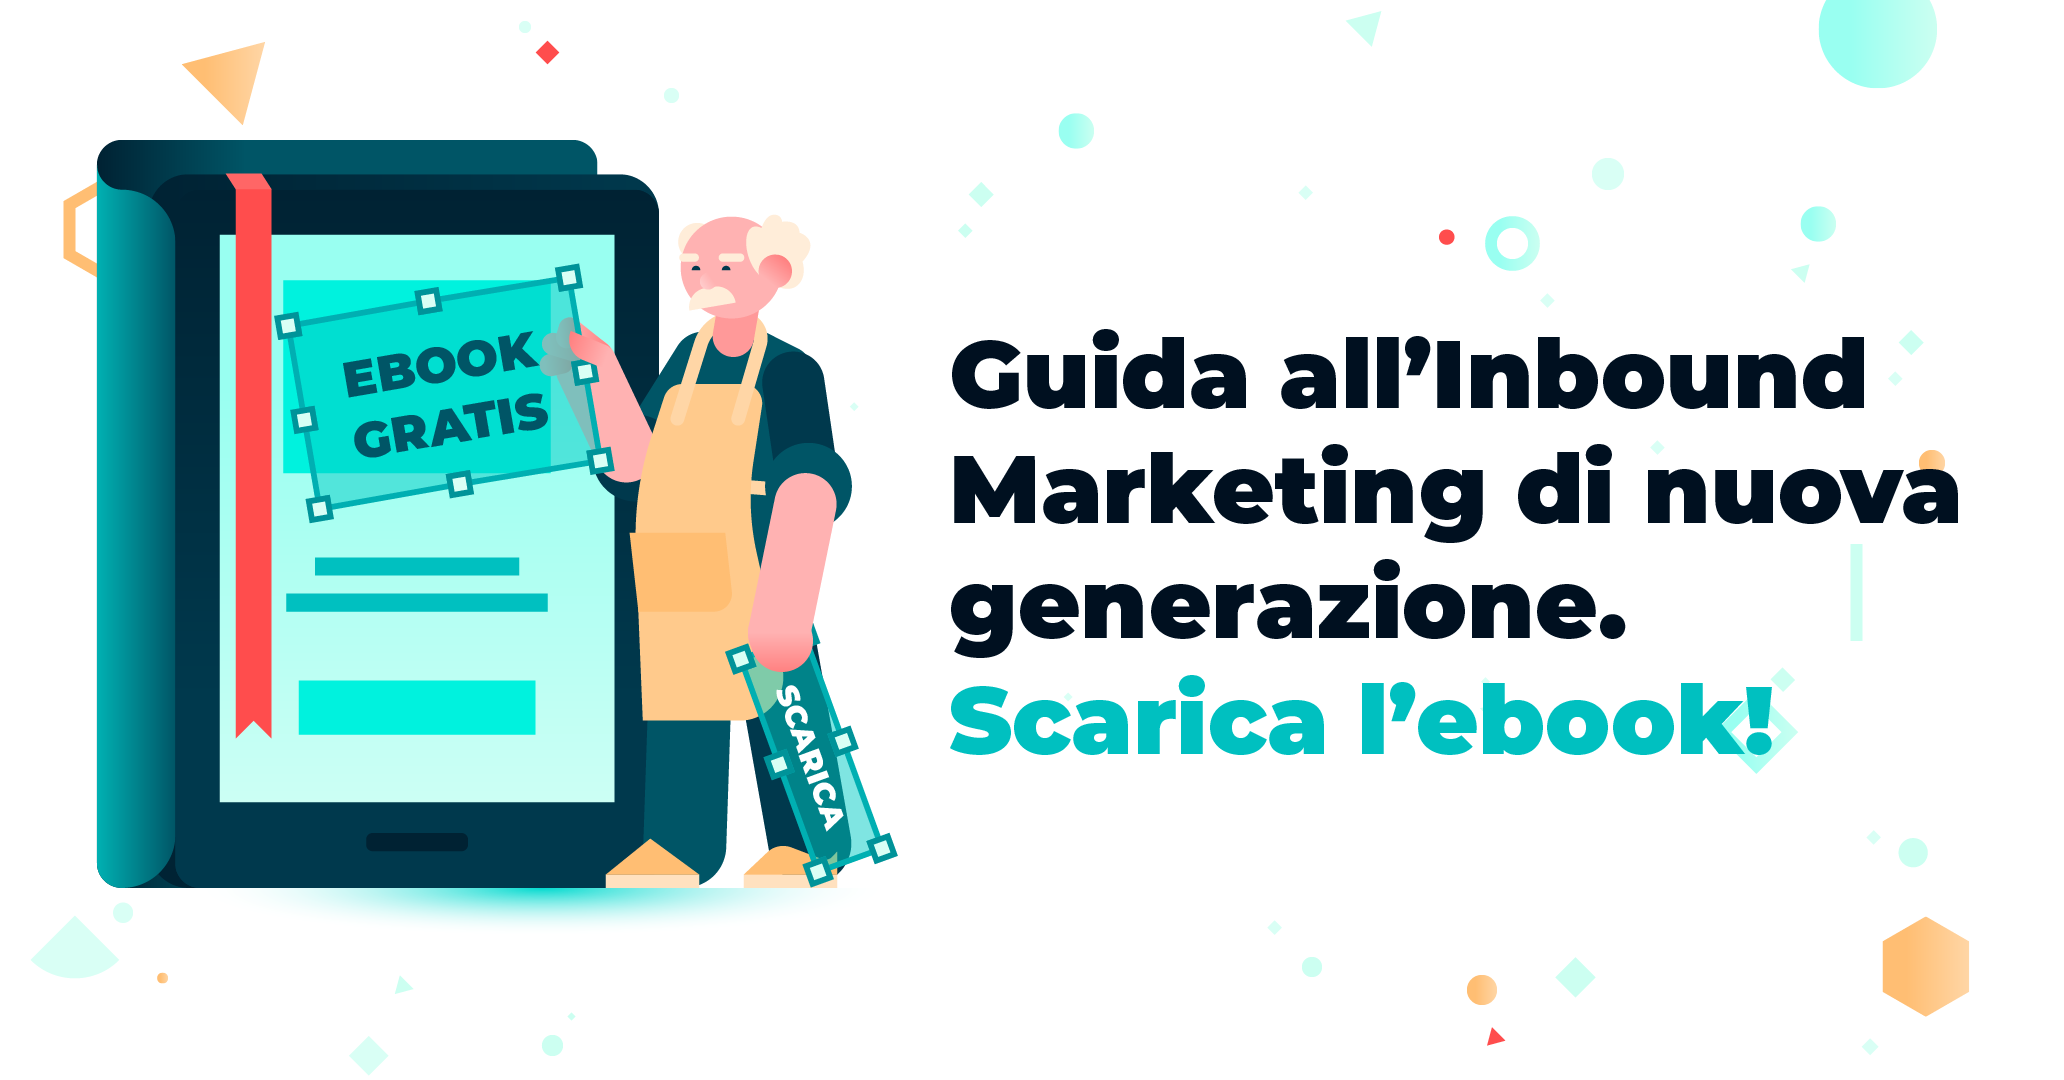 Sviluppare una strategia di Inbound Marketing